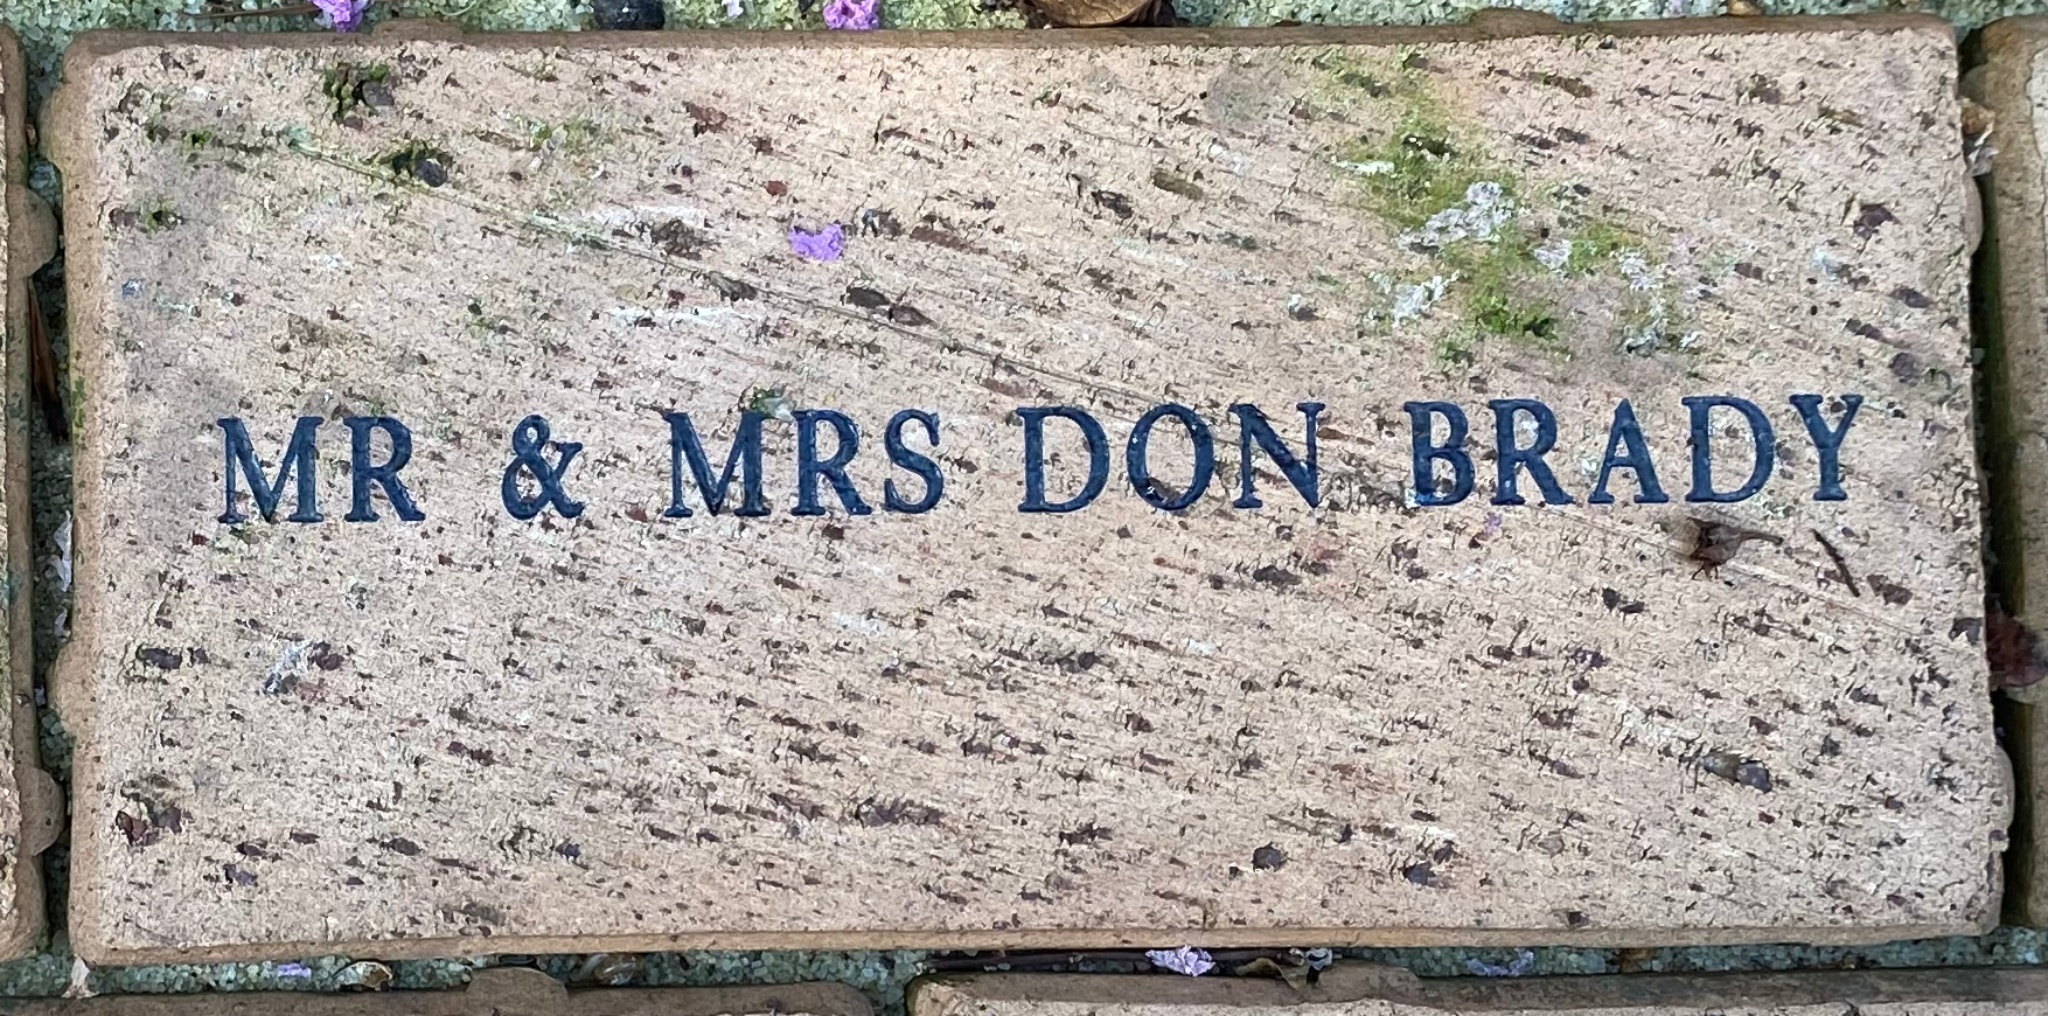 MR & MRS DON BRADY